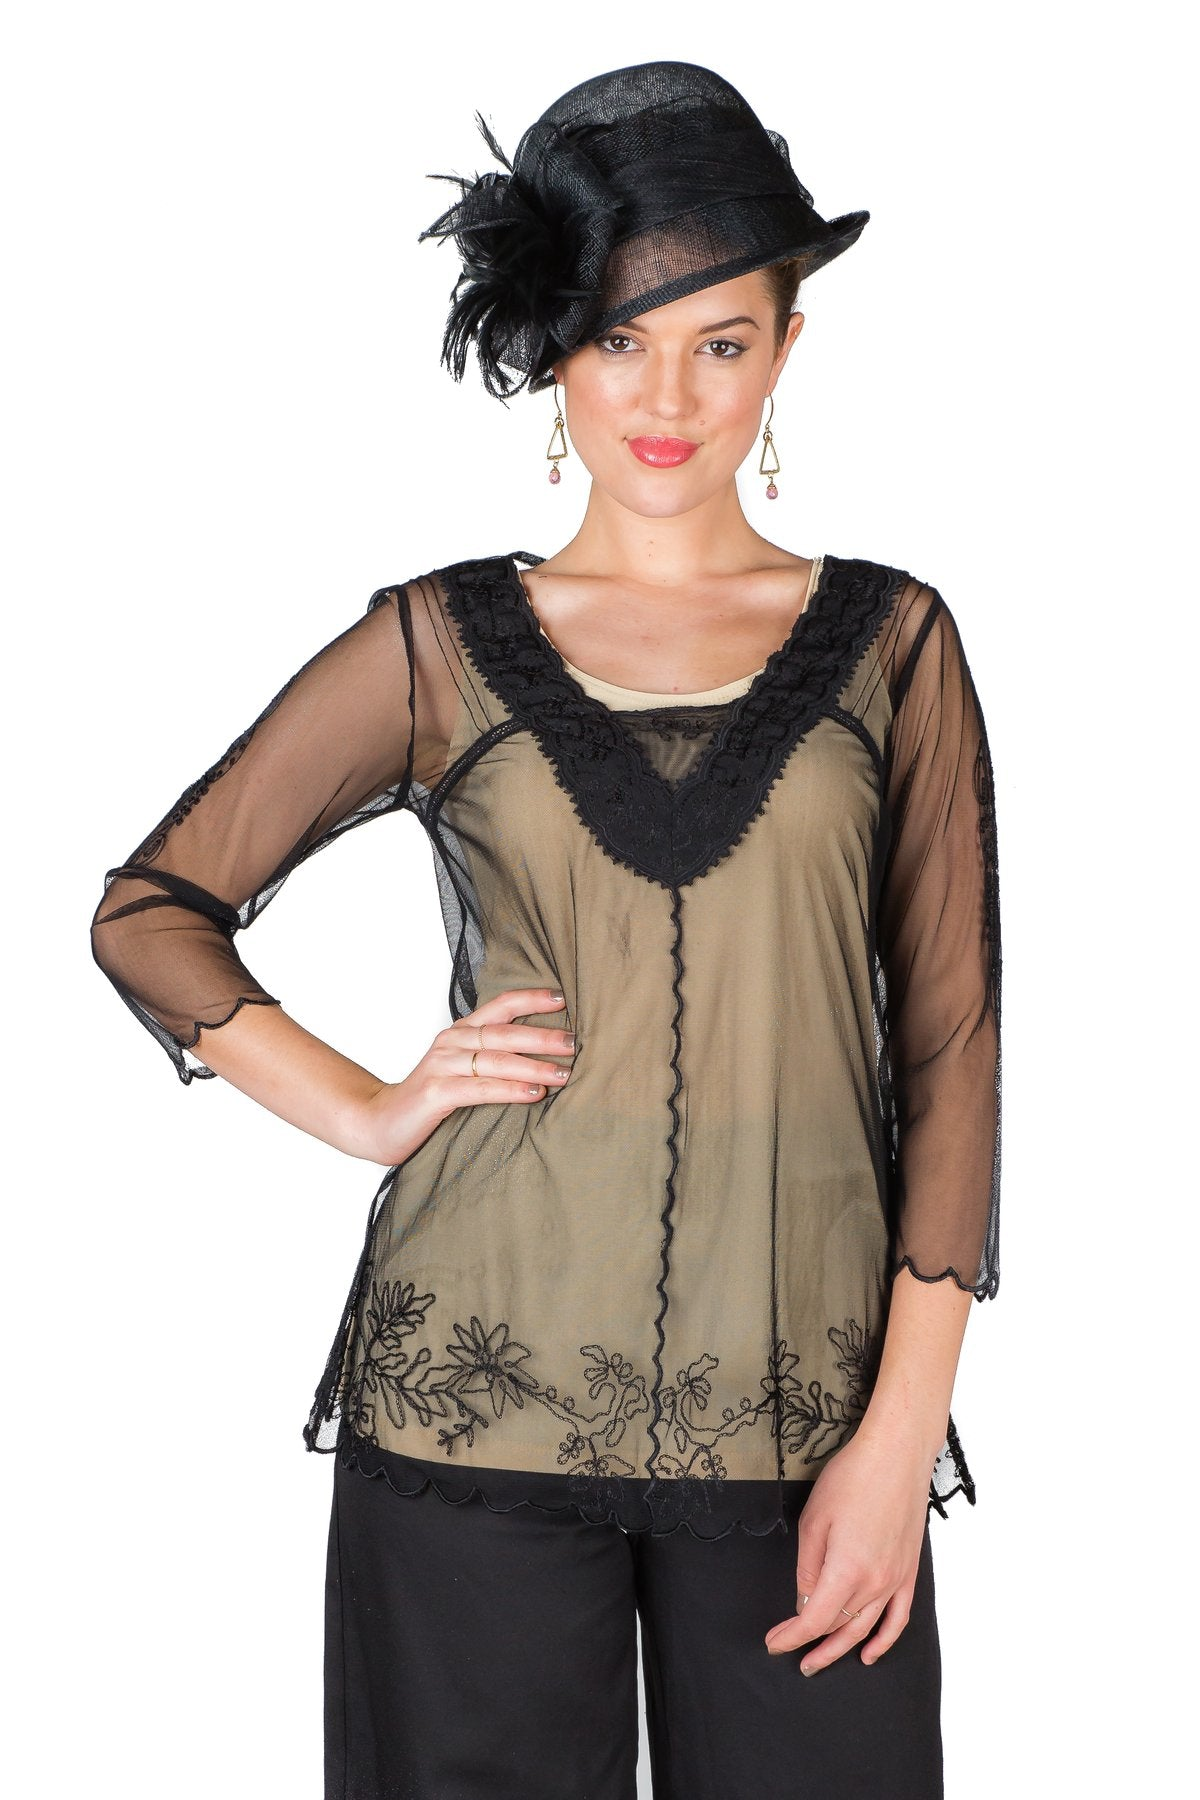 Victorian Blouses, Tops, Shirts, Sweaters Victorian Vintage Inspired Top in Black by Nataya $88.00 AT vintagedancer.com